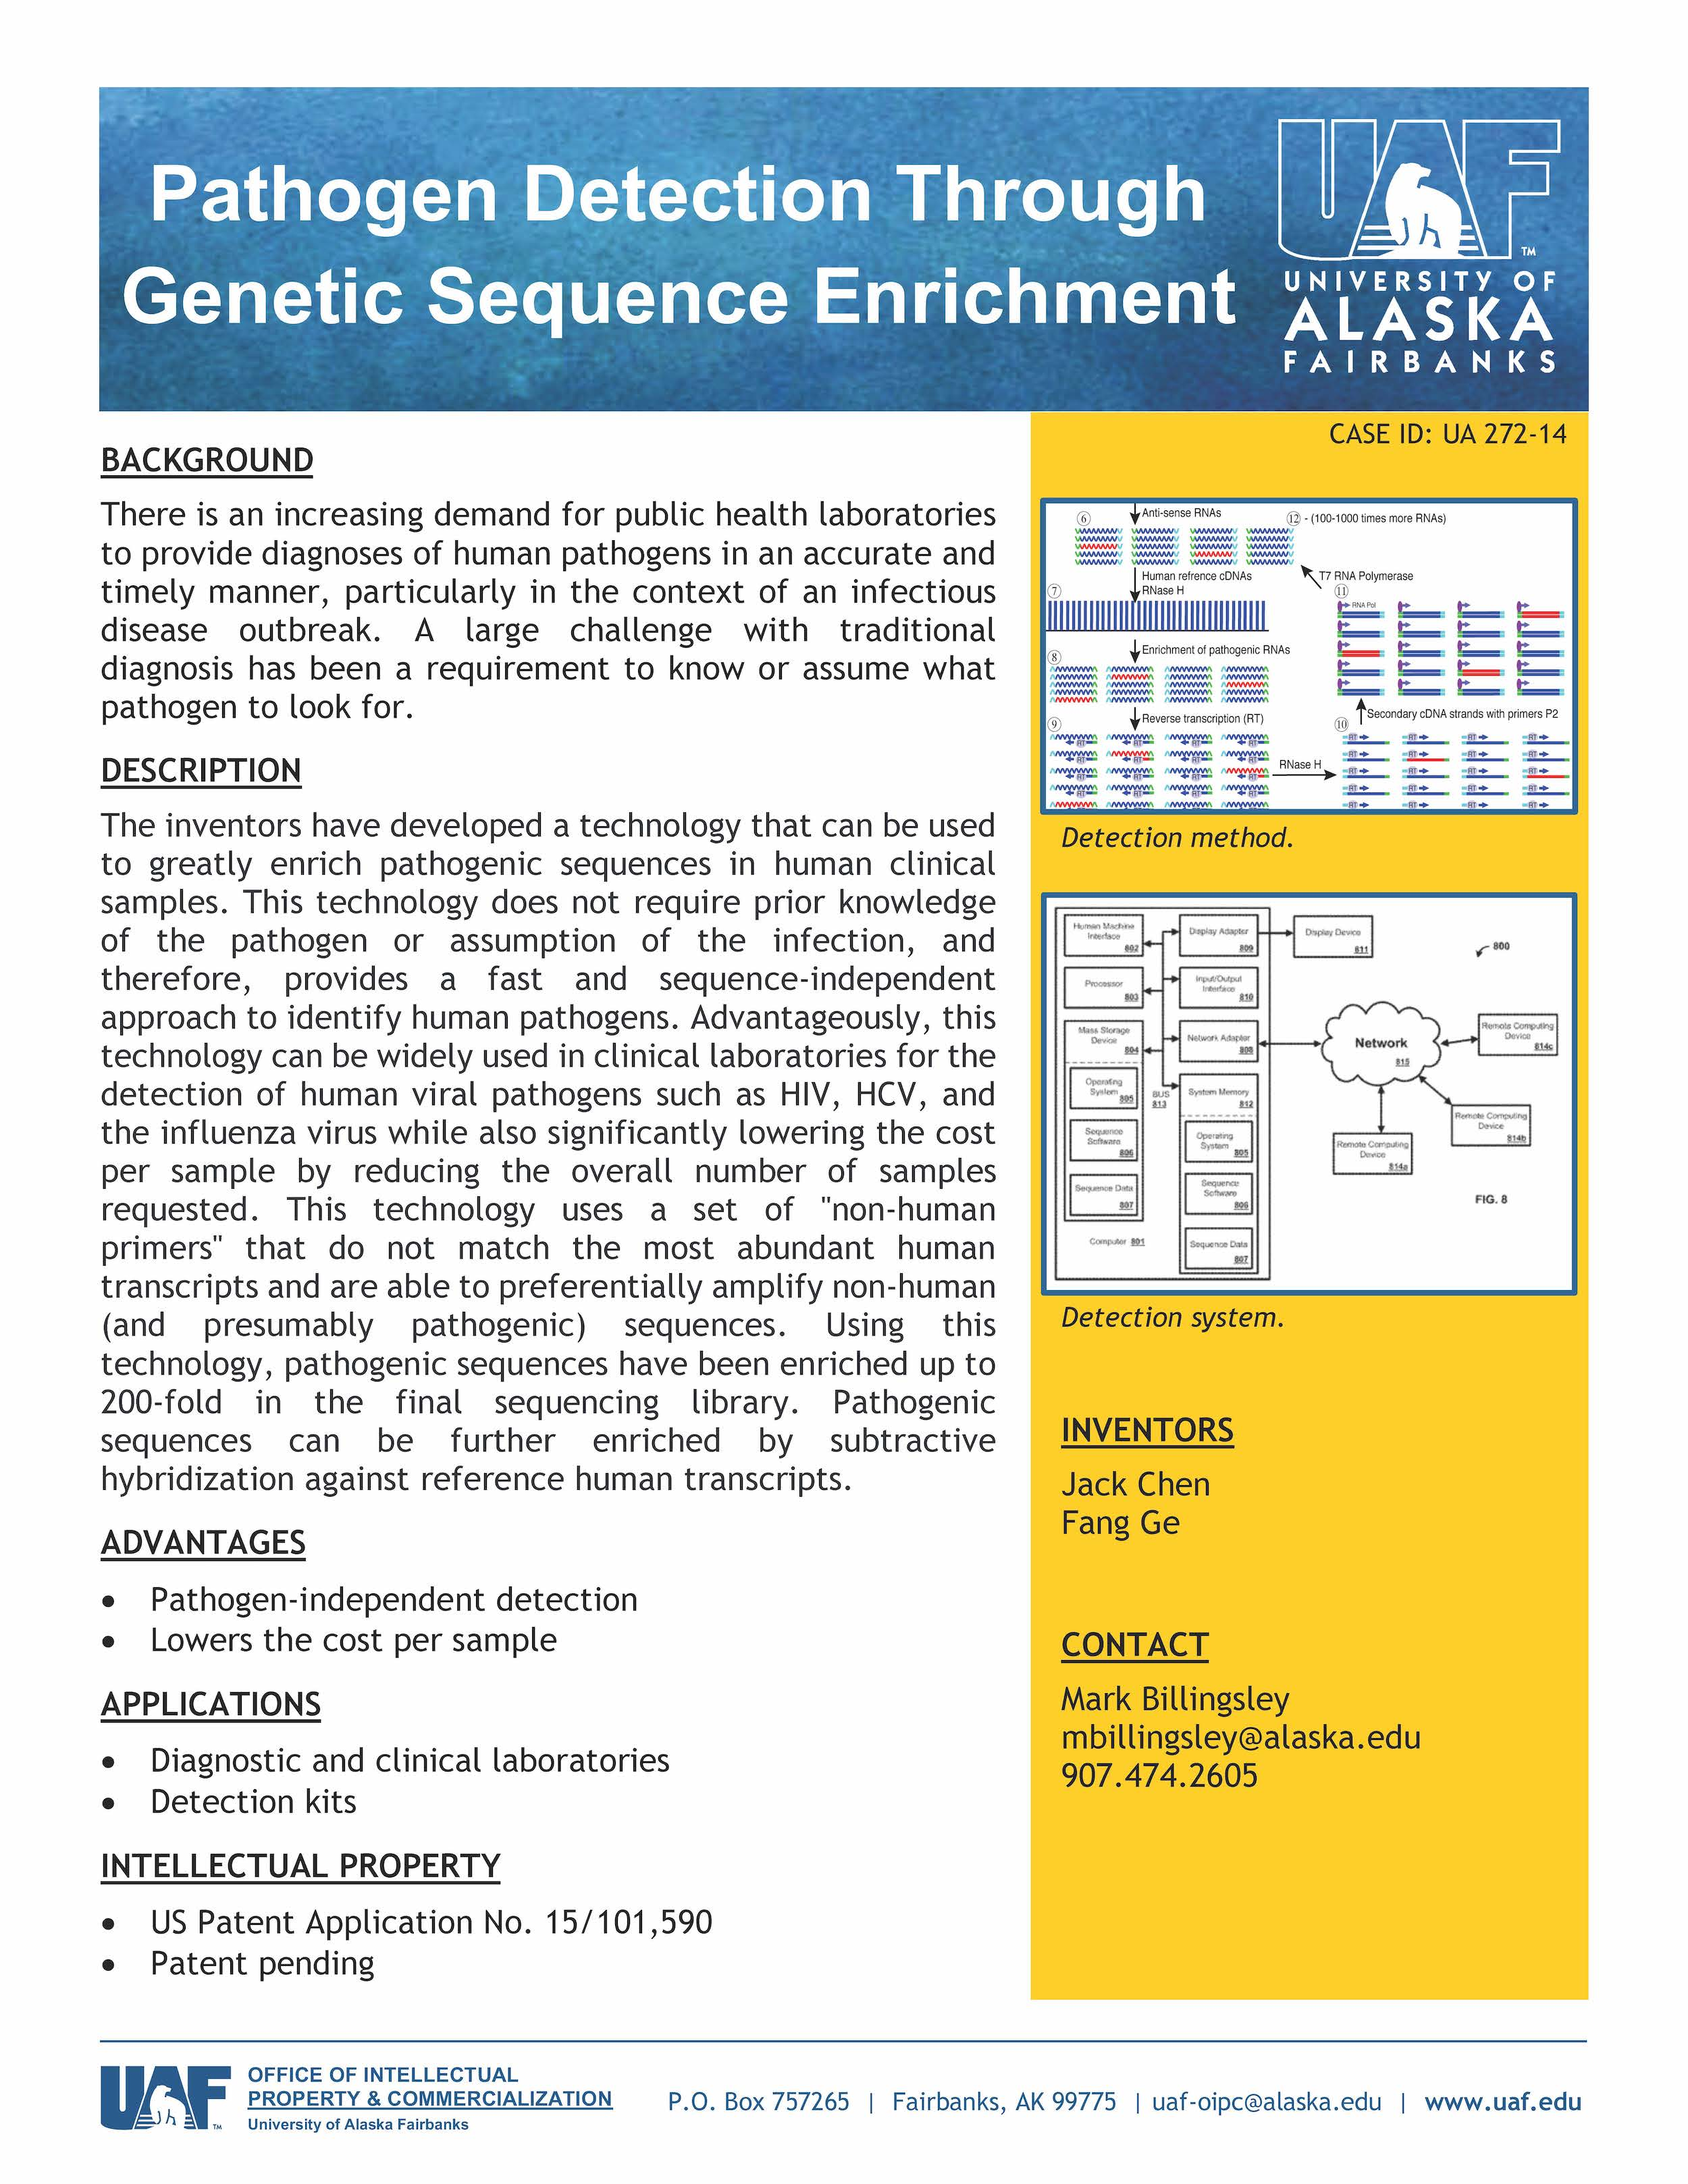 UAF Technology - Pathogen Detection Through Genetic Sequence Enrichment